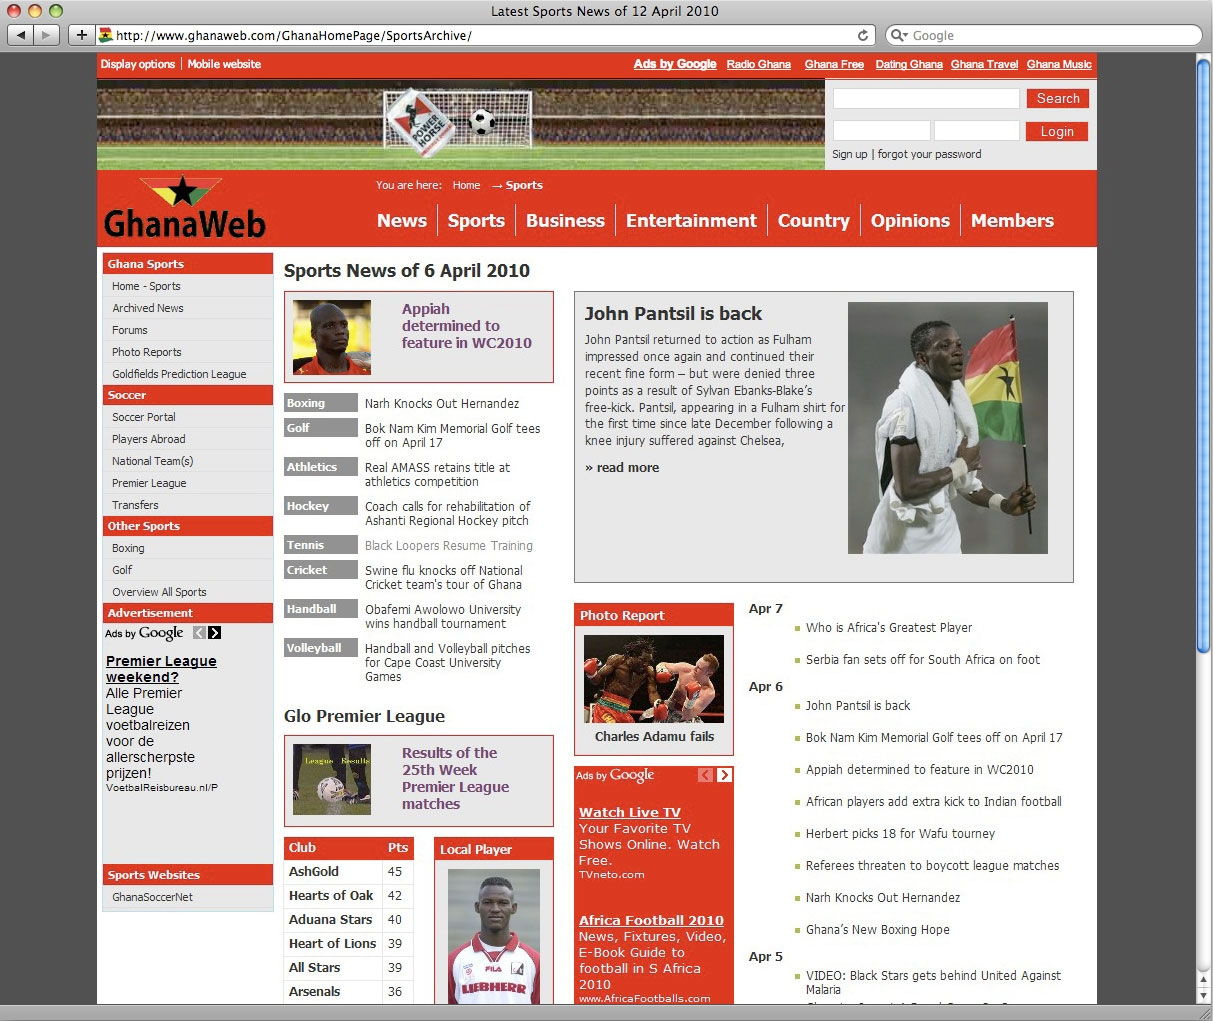 Bannerkampagne Power-Horse 2010, Click & Win: Ghana Web © echonet communication